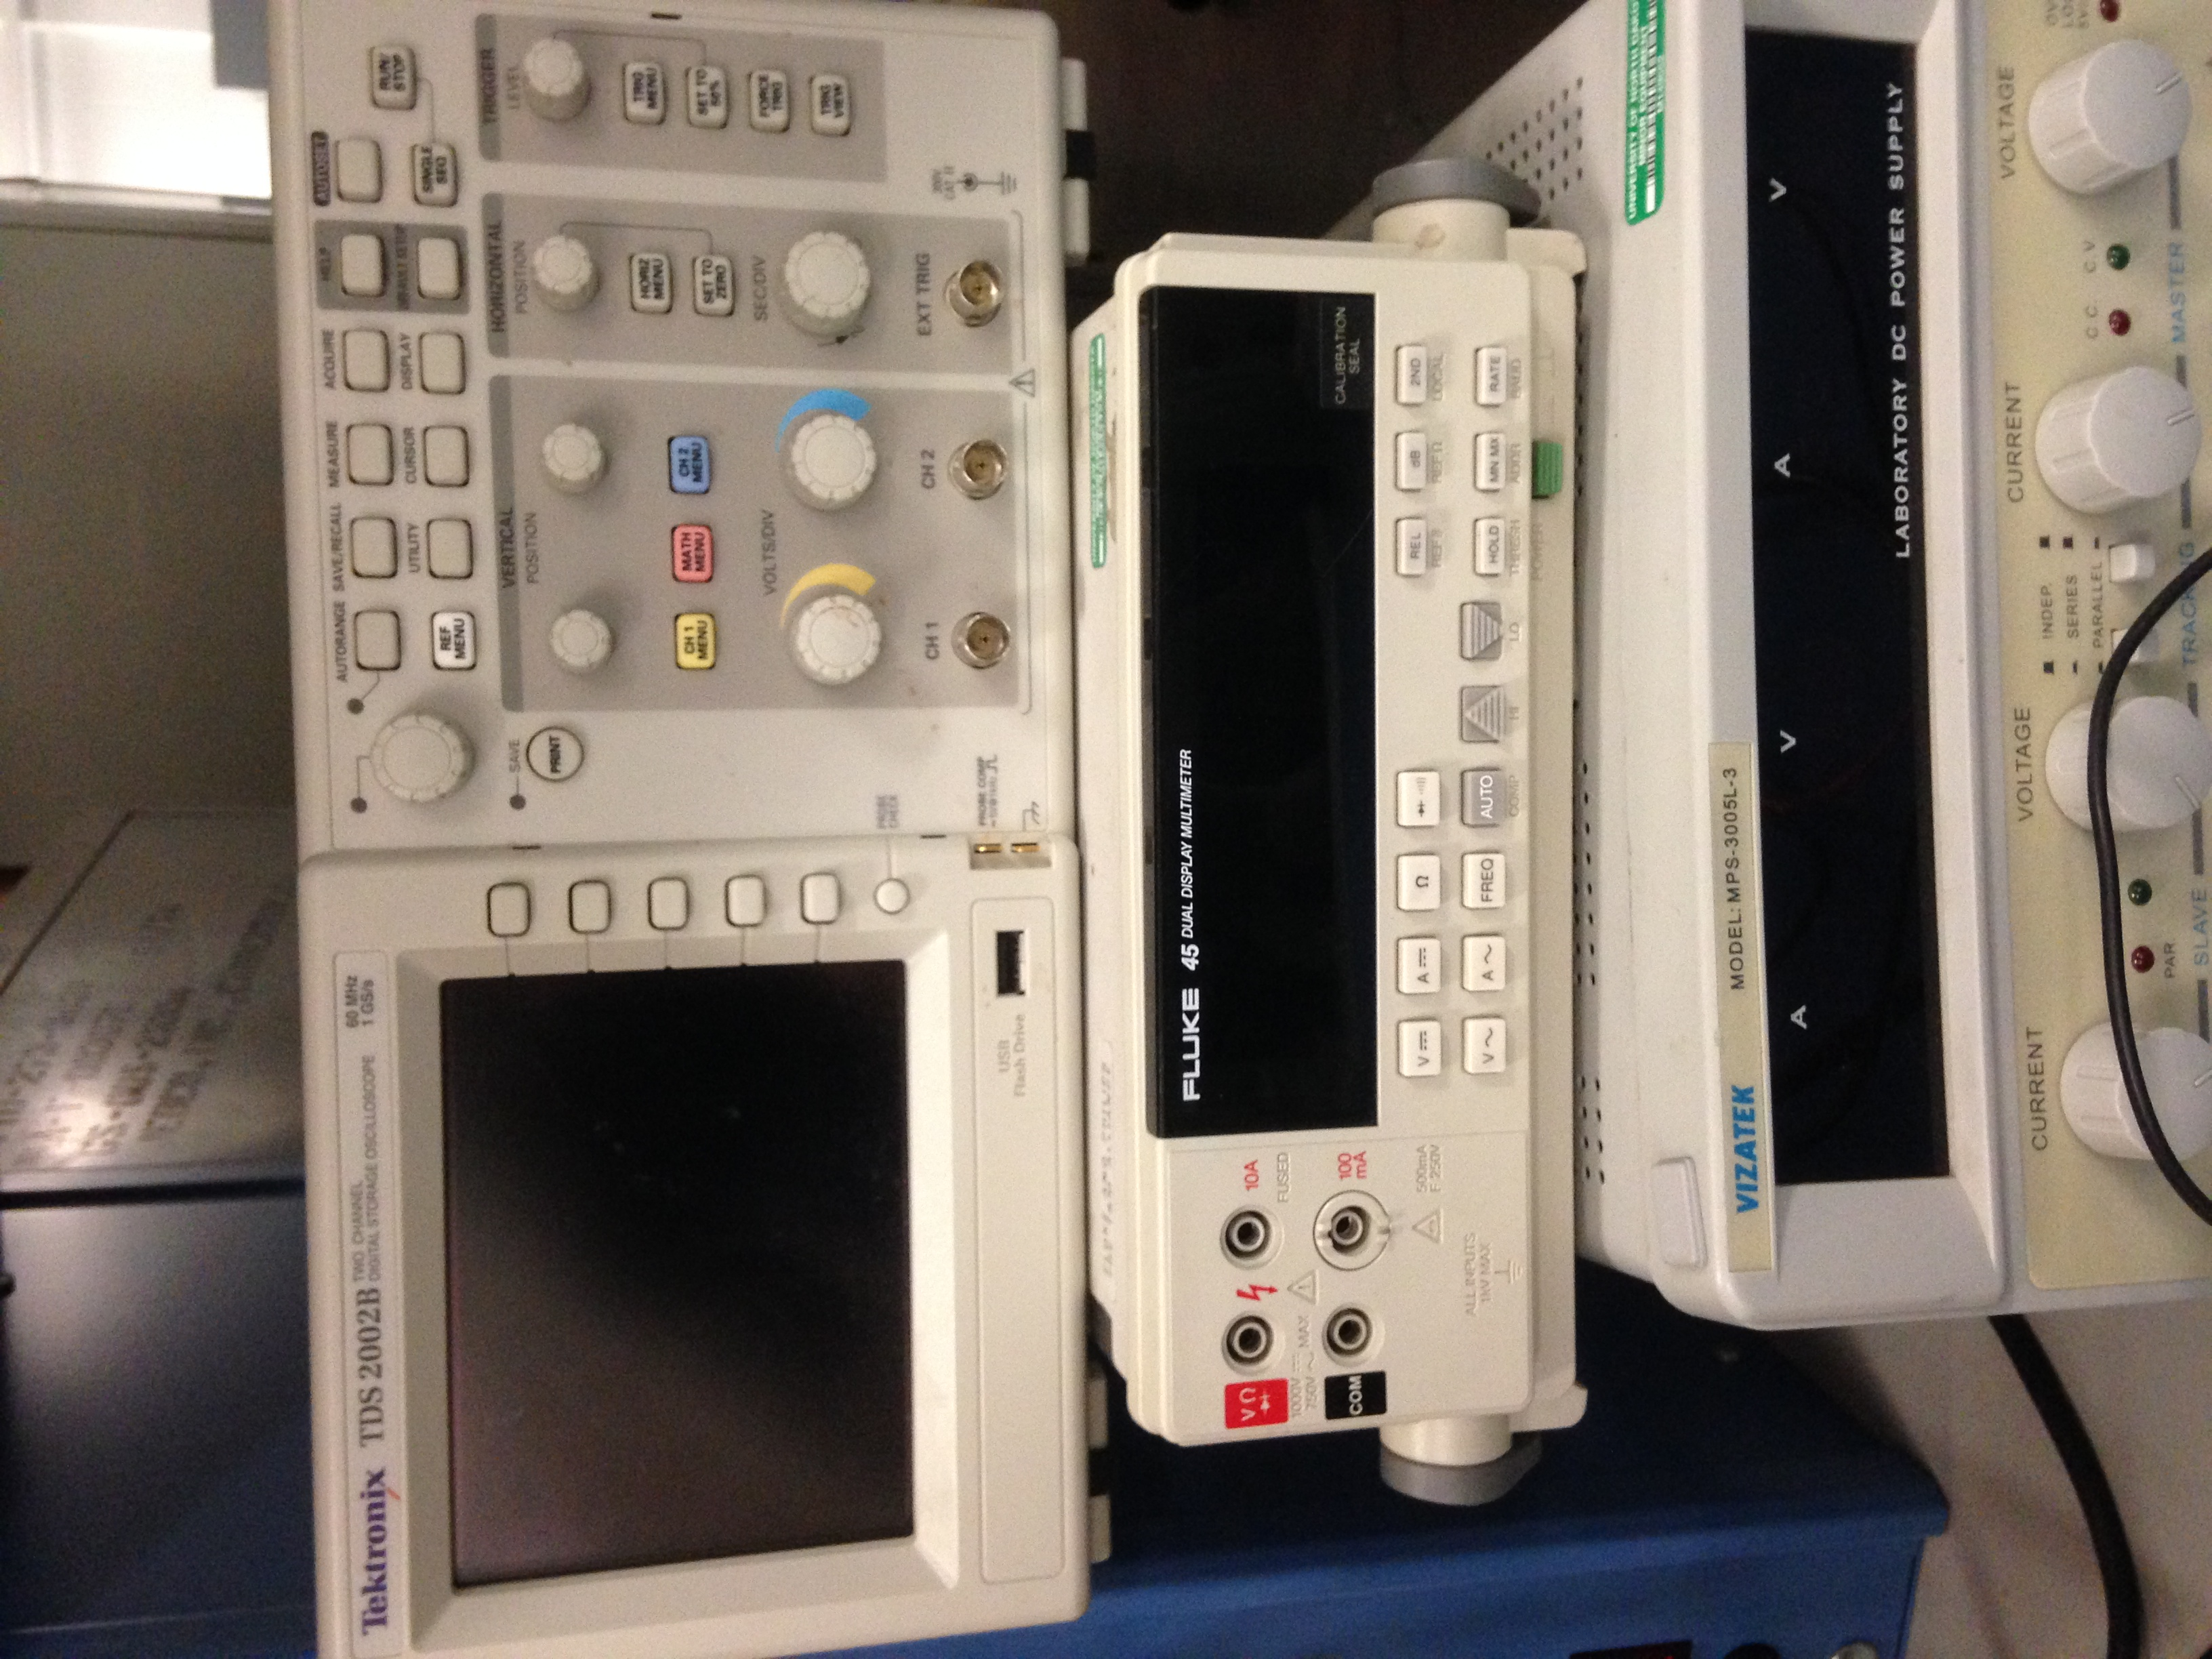 Electronics Test Equipment Supply : Electronic test equipment model numbers